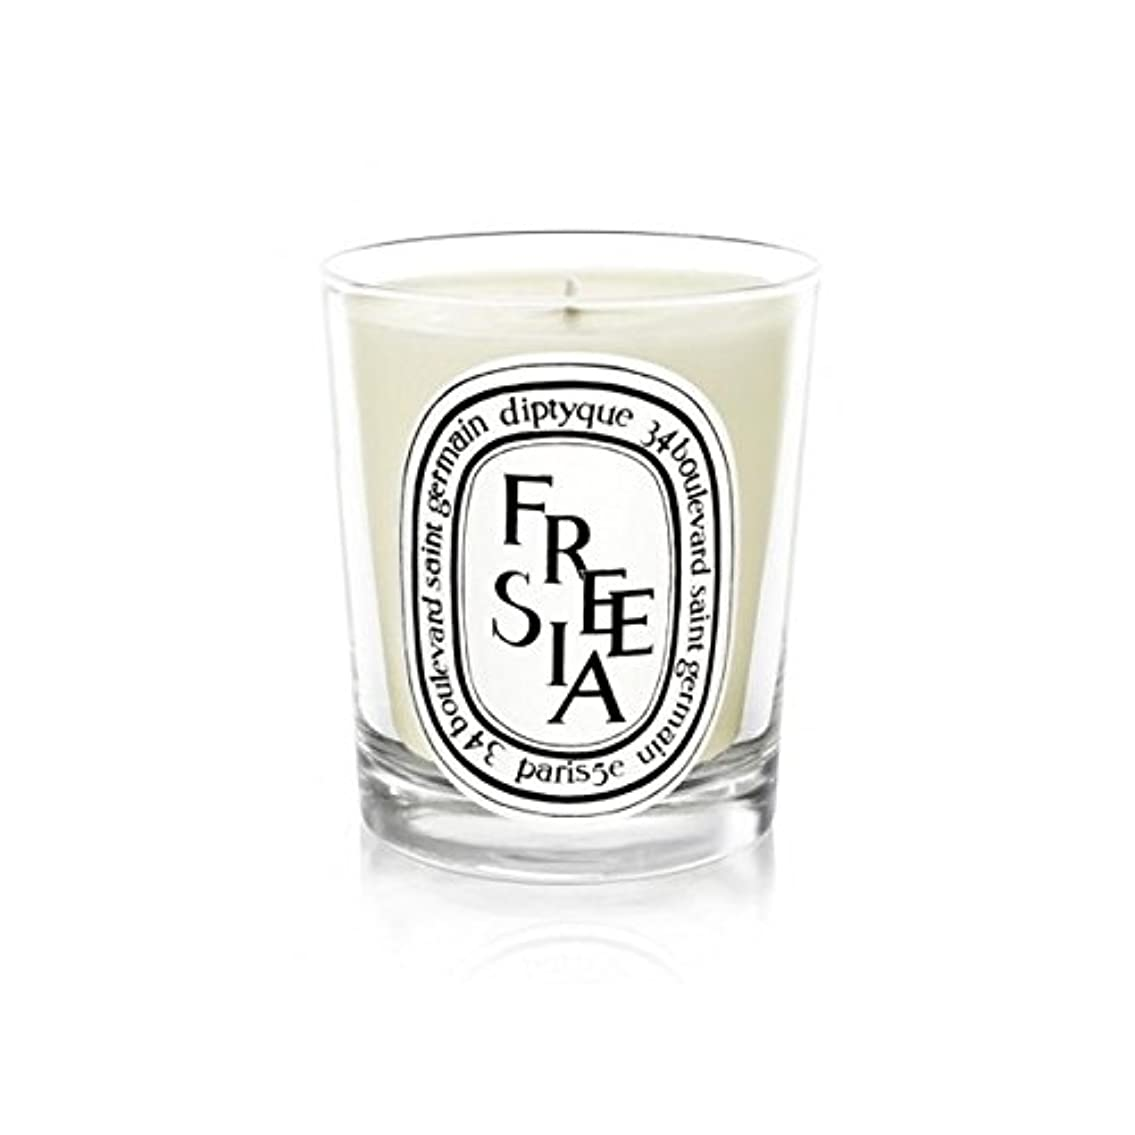 Diptyqueキャンドルフリージア/フリージアの190グラム - Diptyque Candle Freesia / Freesia 190g (Diptyque) [並行輸入品]